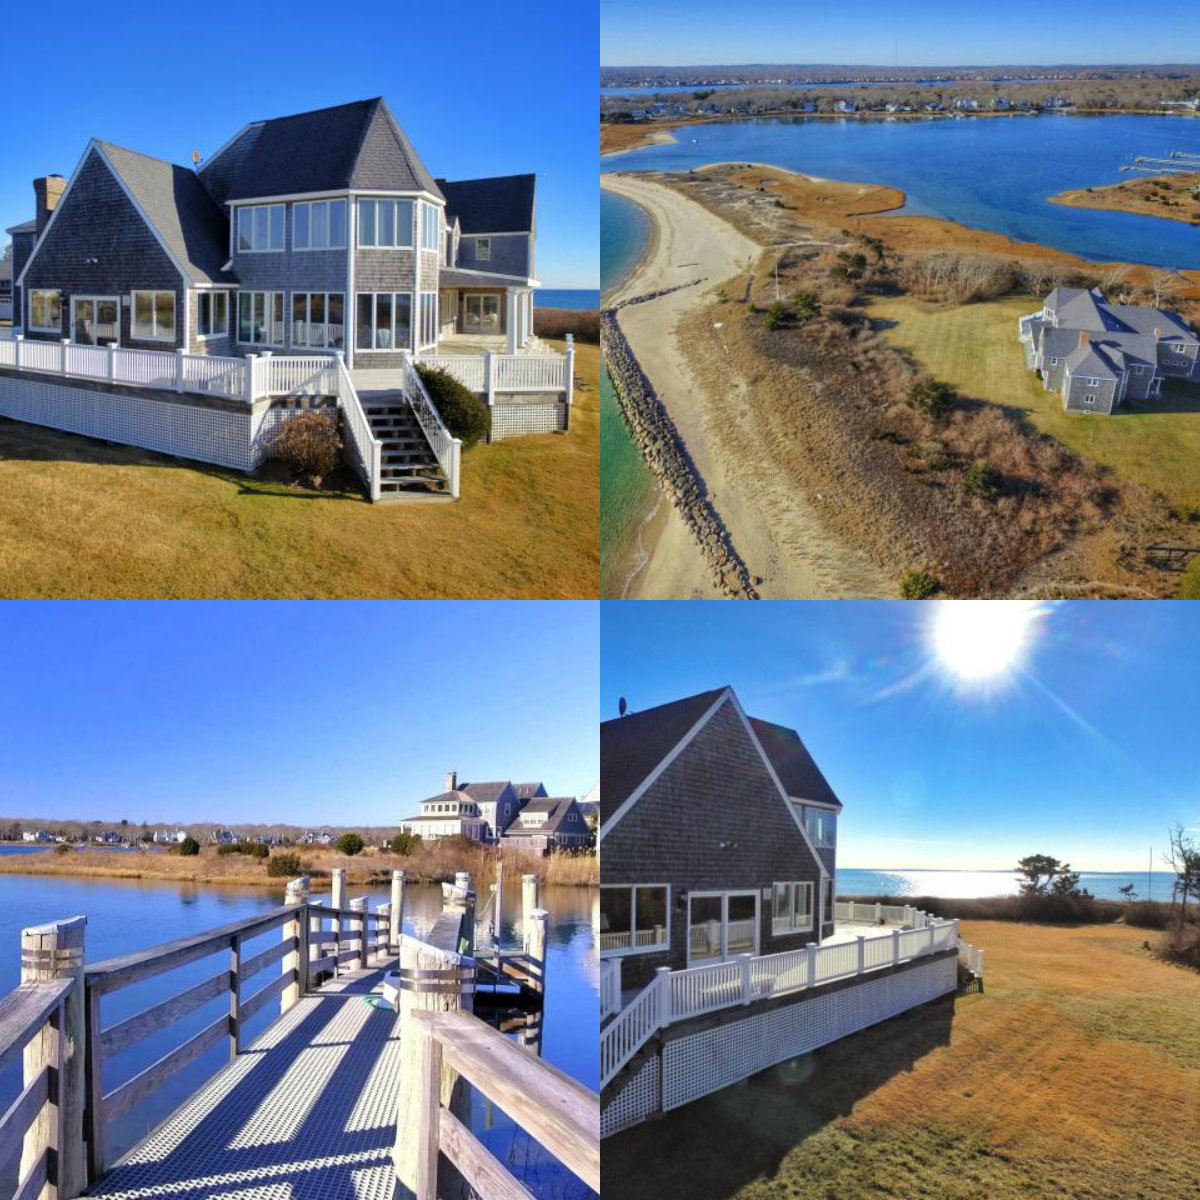 4 images of 24 Willis Lane in East Falmouth in Cape Cod MA